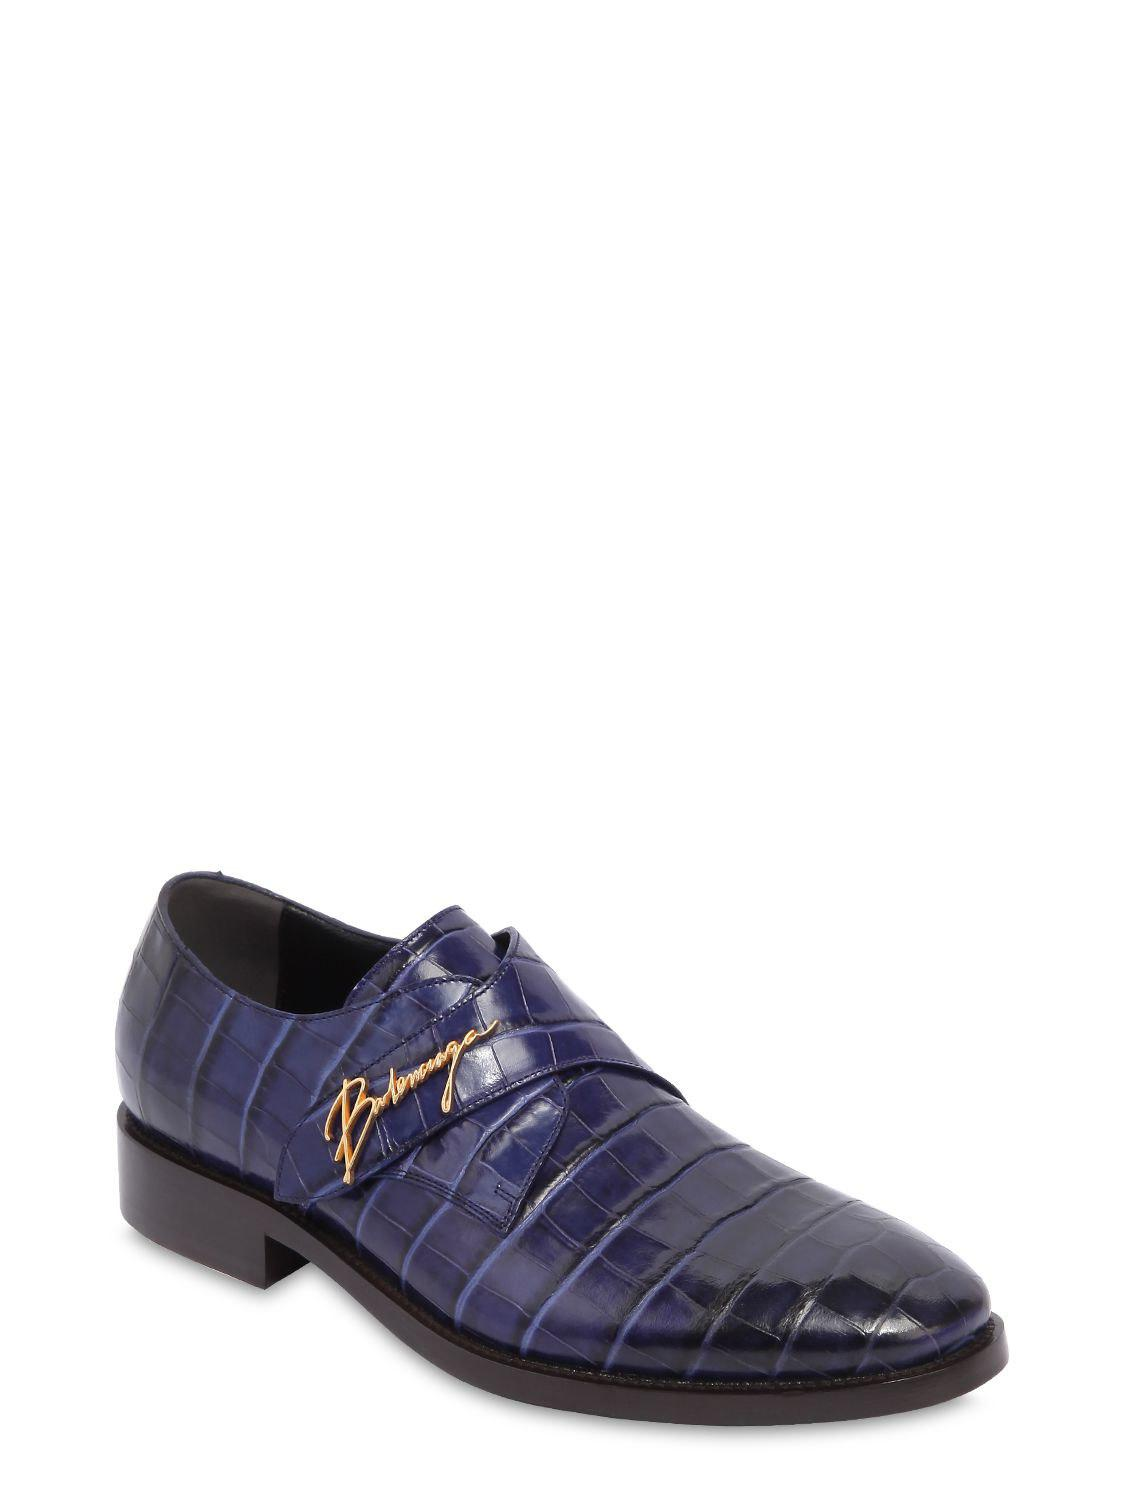 62d1d543398b Balenciaga - Blue Croc Embossed Leather Slip-on Shoes for Men - Lyst. View  fullscreen